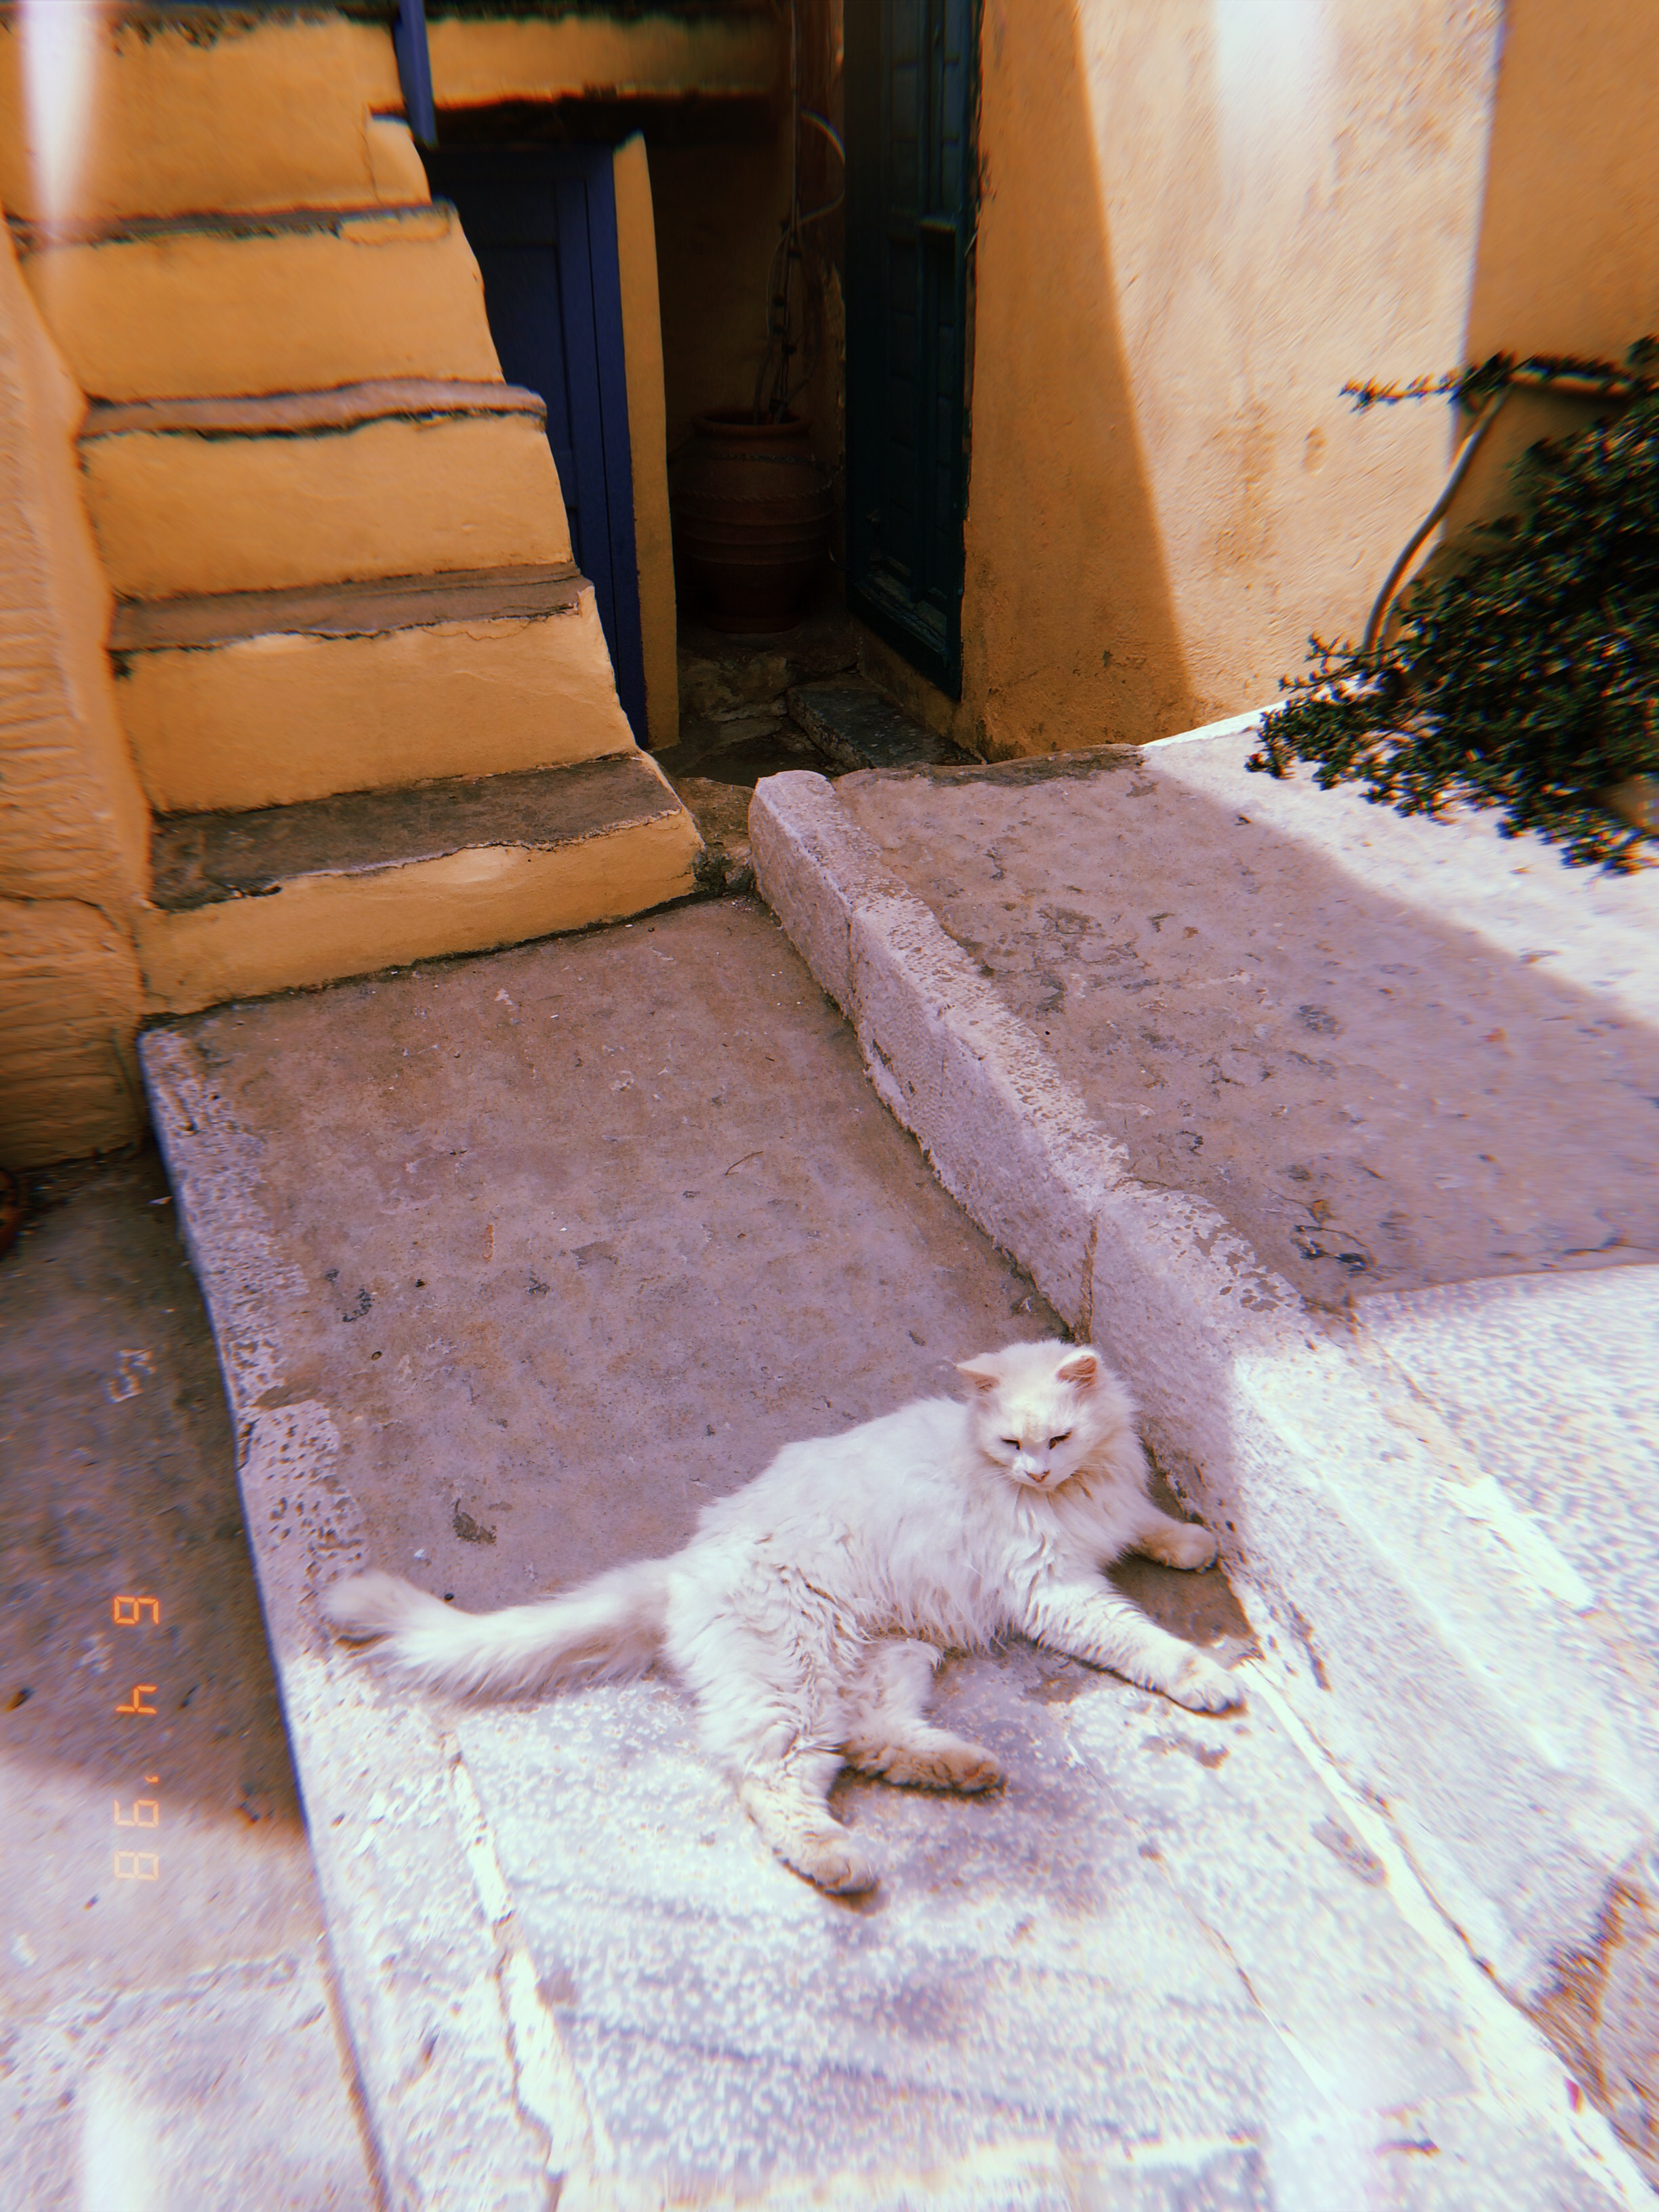 Syros kitty